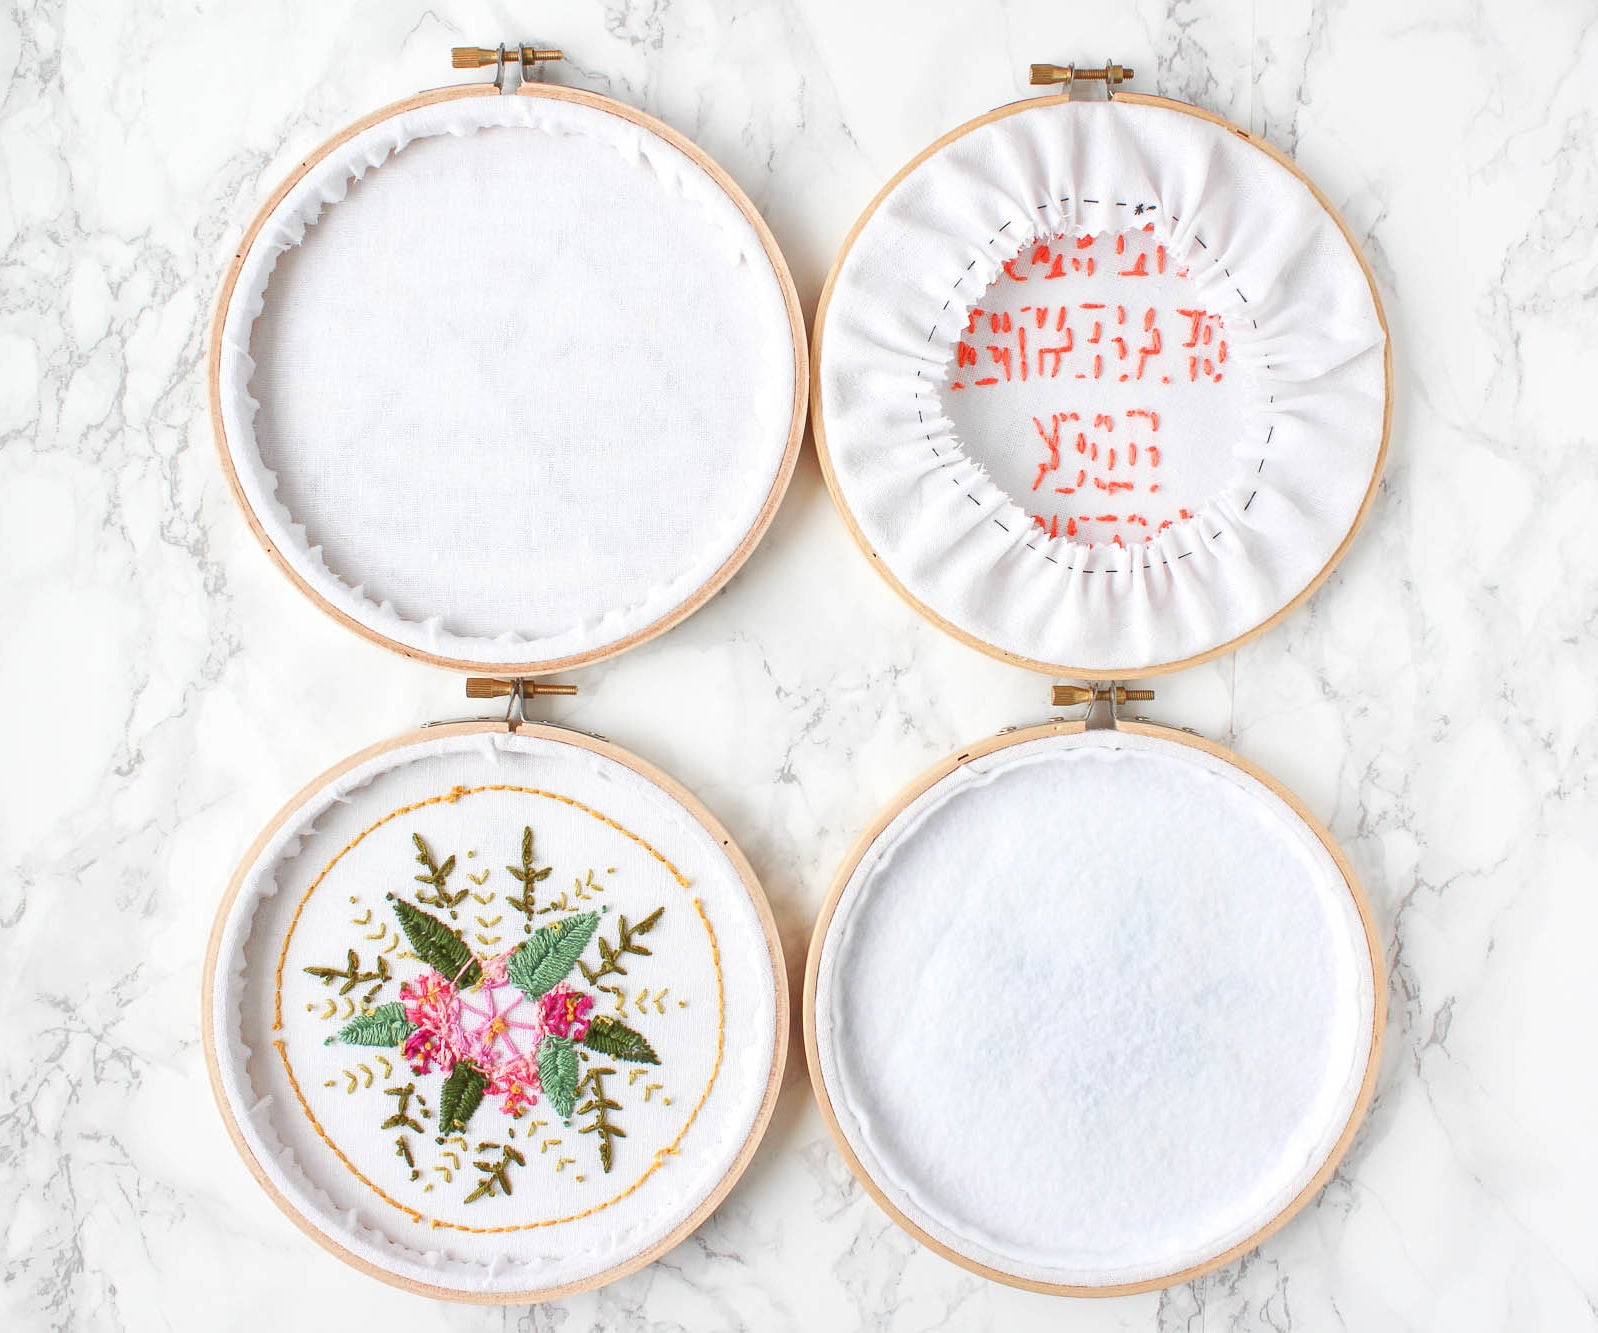 large stitching hoops wooden hoop for embroidery large cross stitch hoop embroidery wall hanging hoop LARGE wooden embroidery hoop